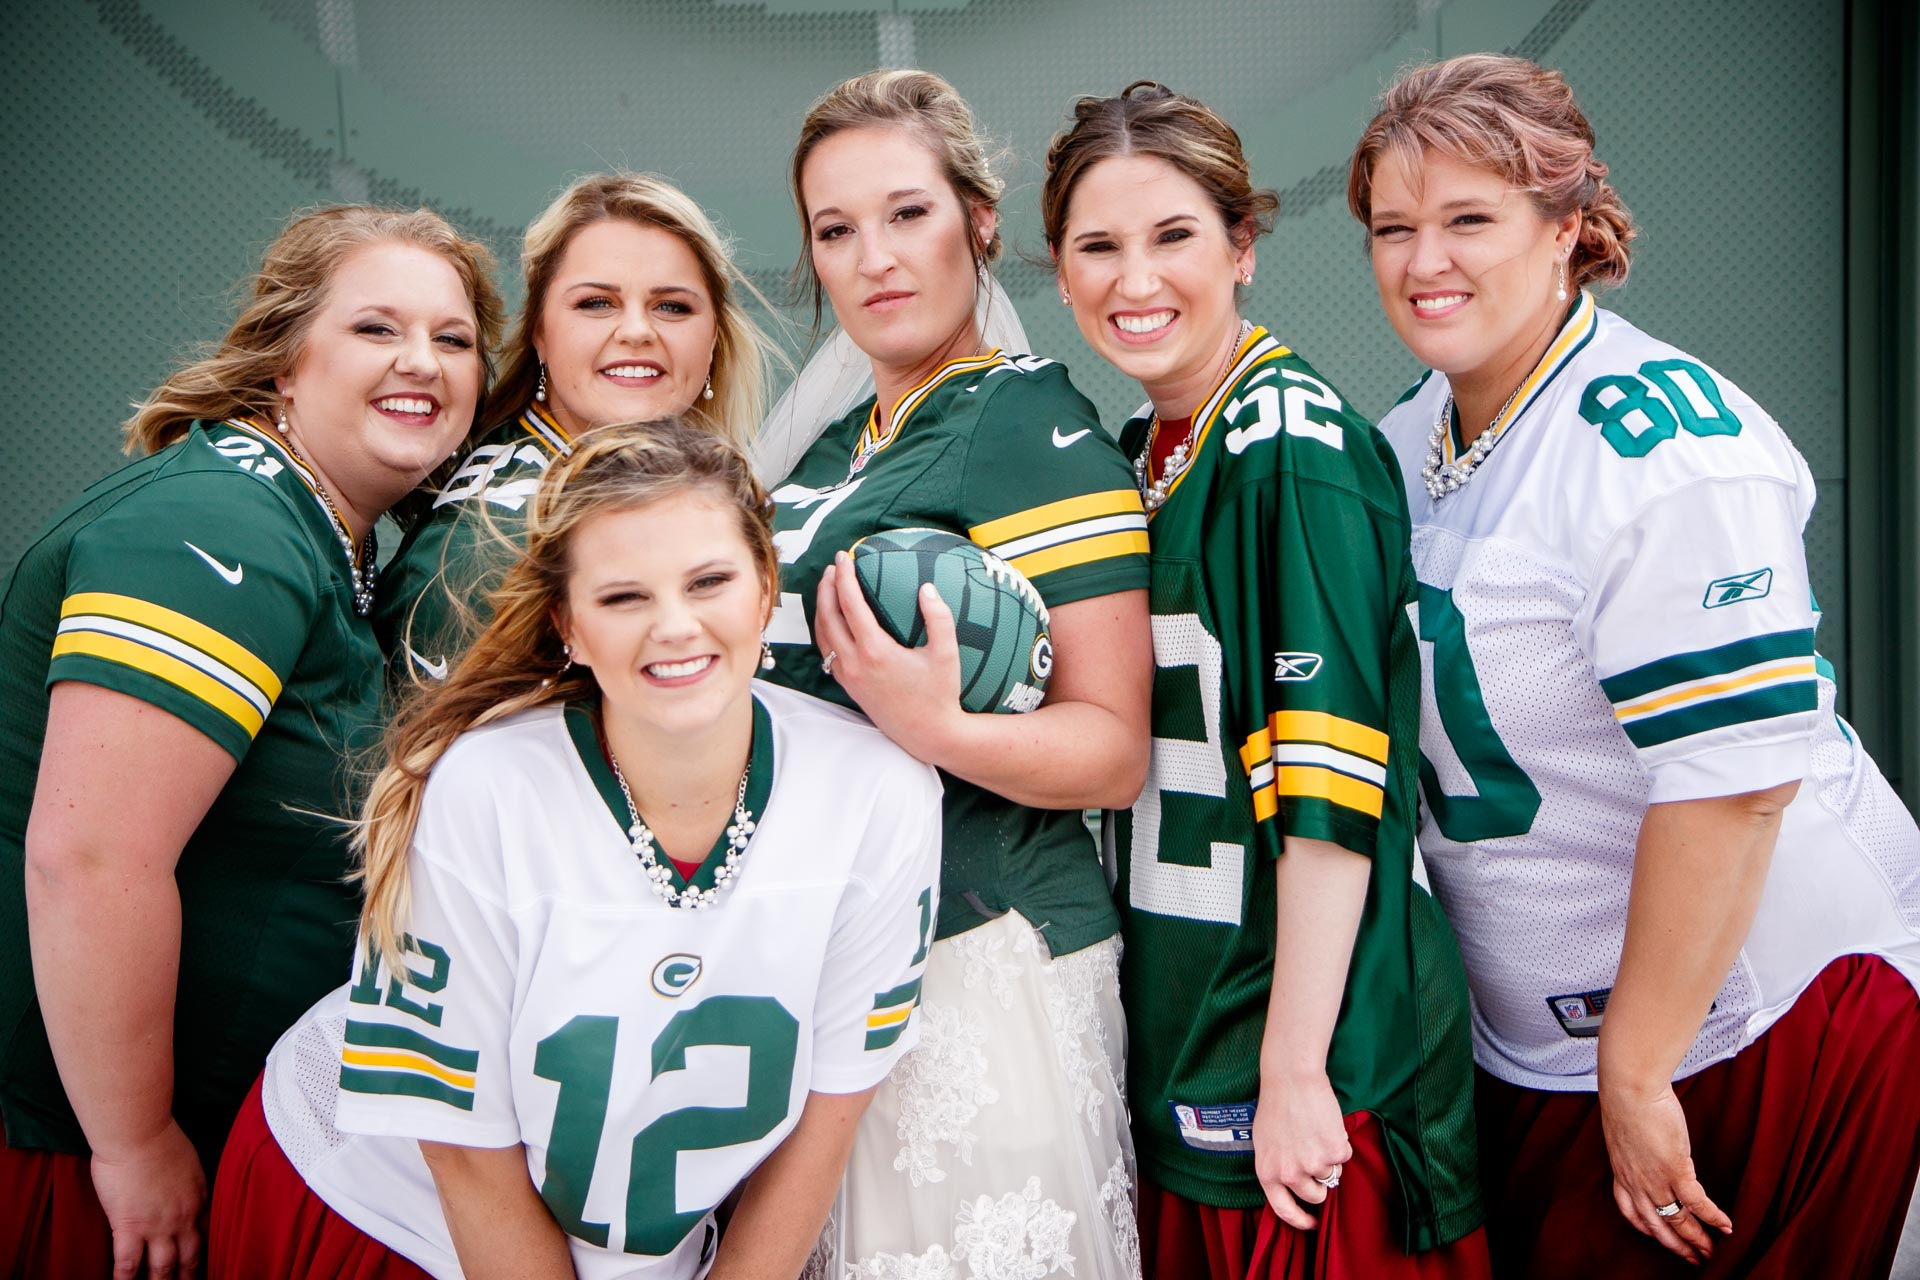 lambeau-field-wedding-bride-groom-adam-shea-photography-green-bay-appleton-neenah-photographer.jpg